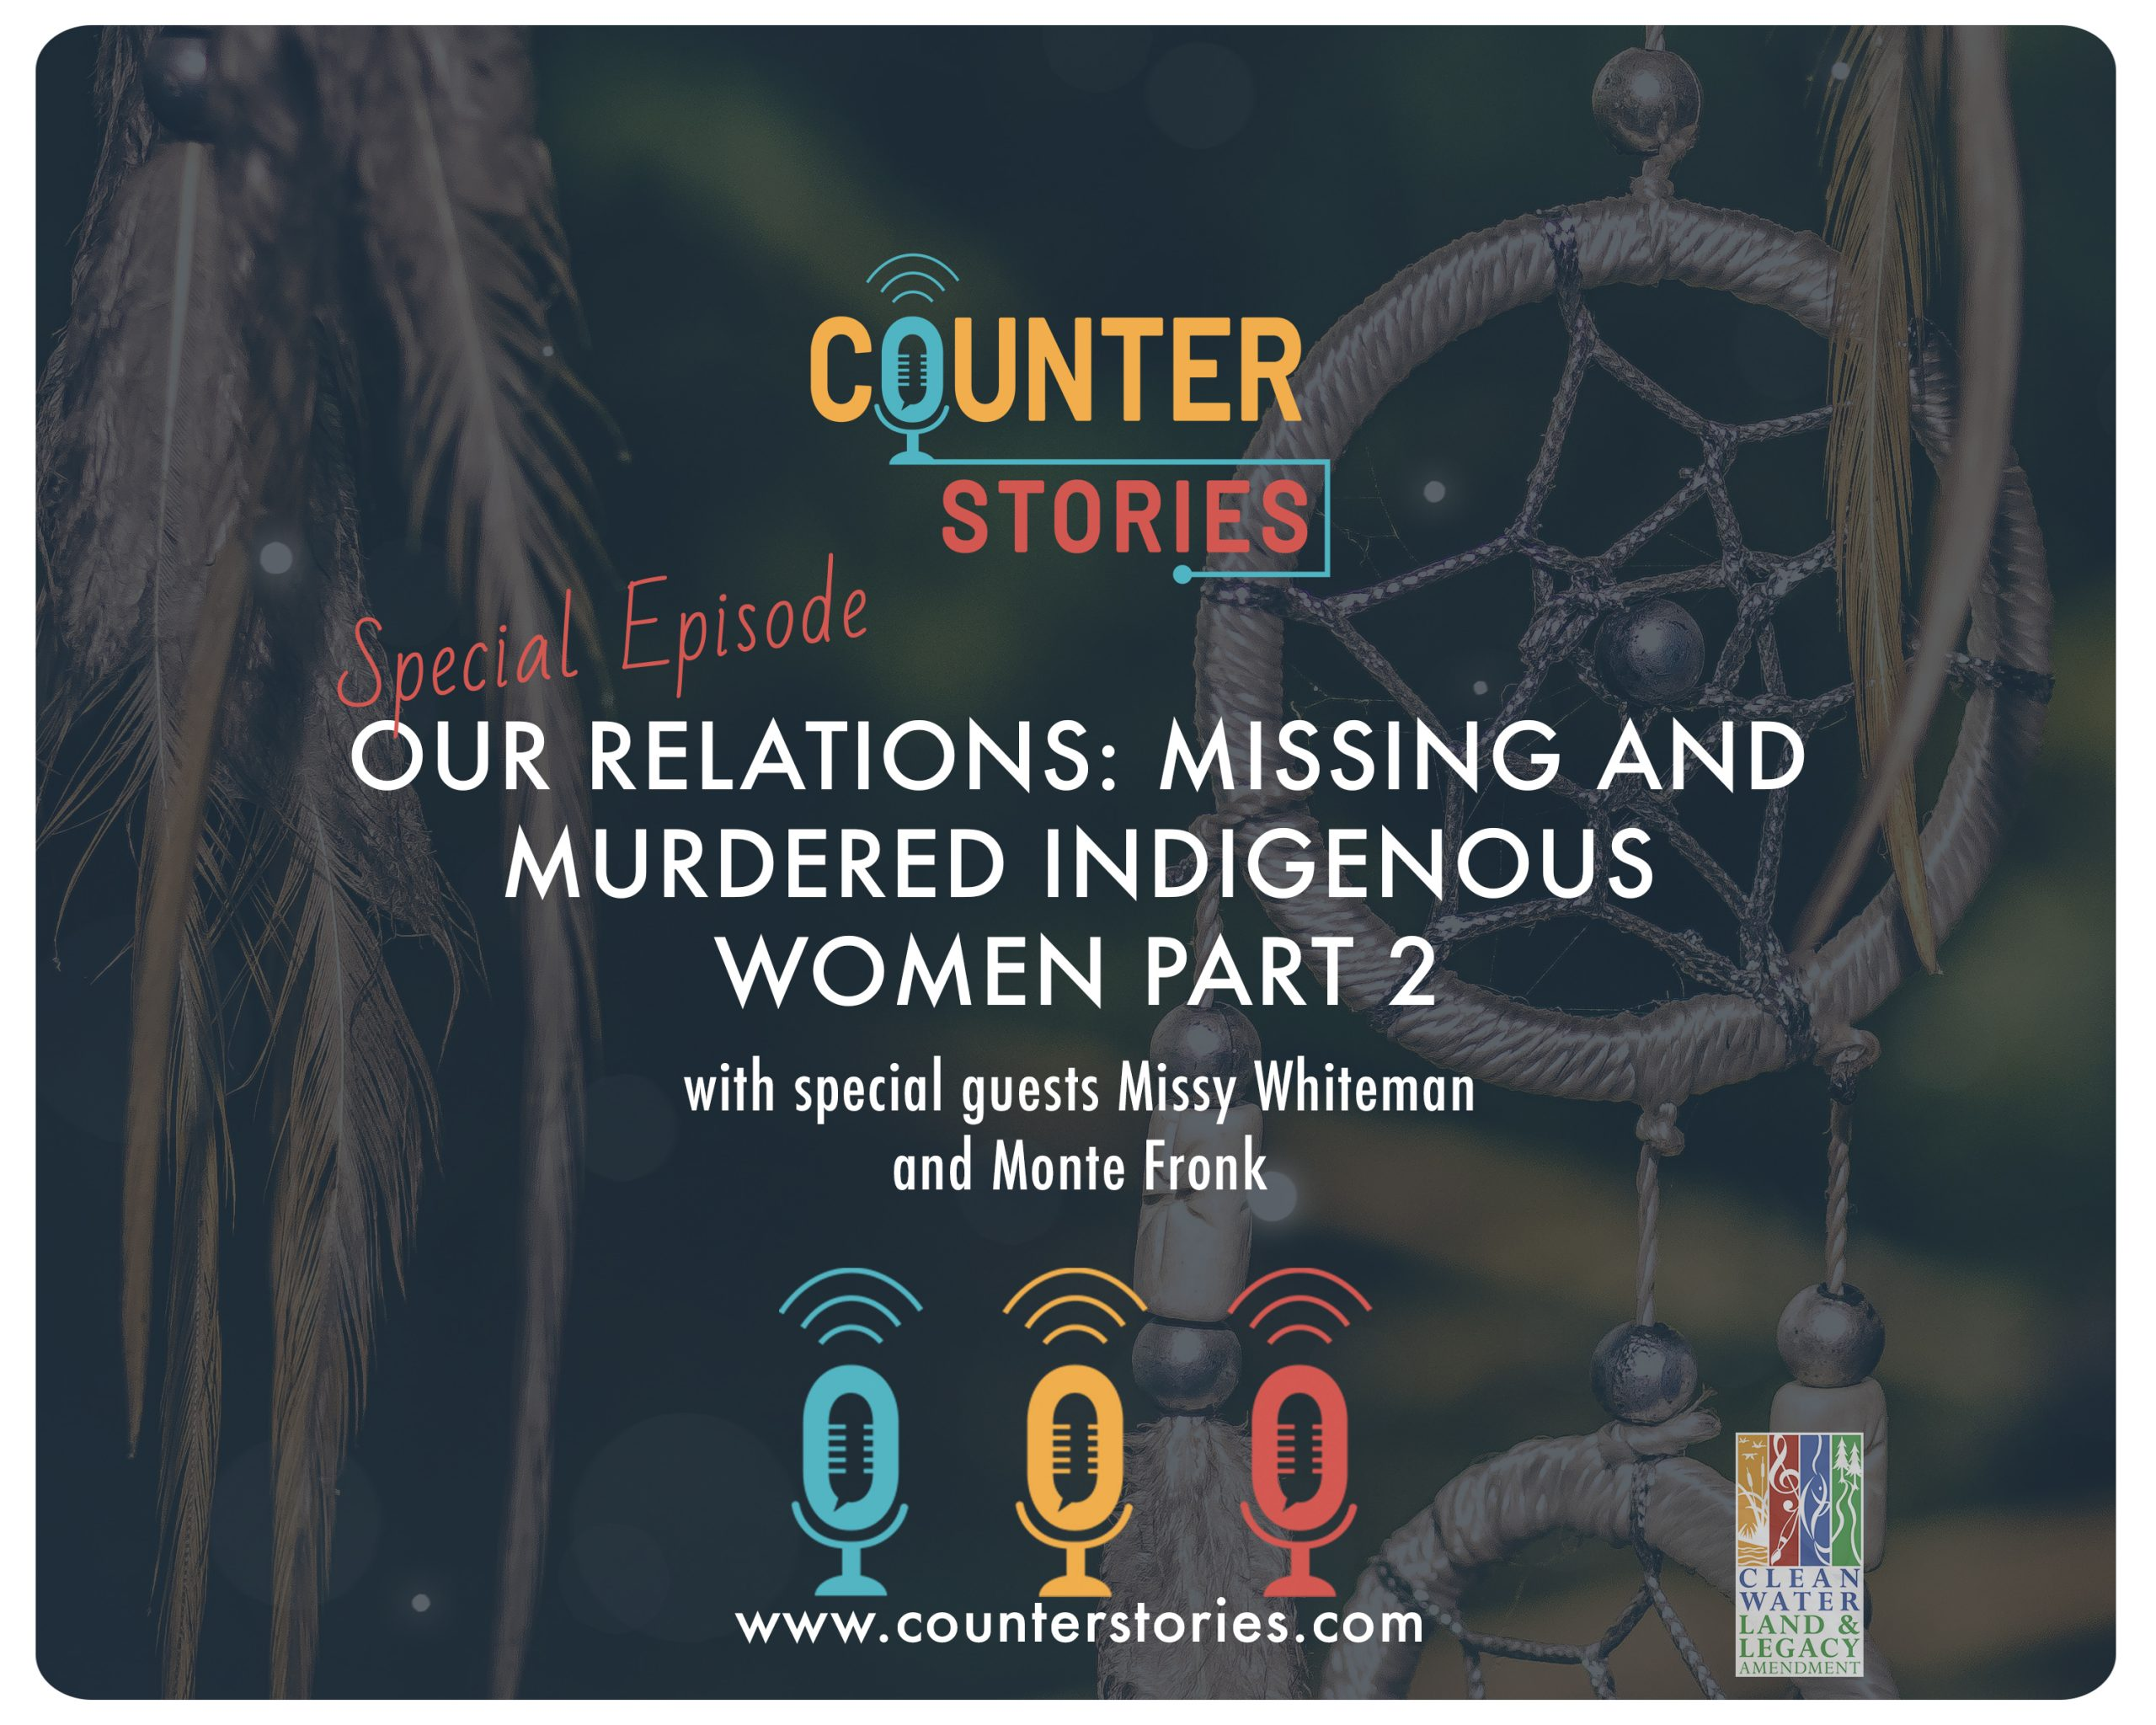 Our Relations: Missing and Murdered Indigenous Women part 2 extended